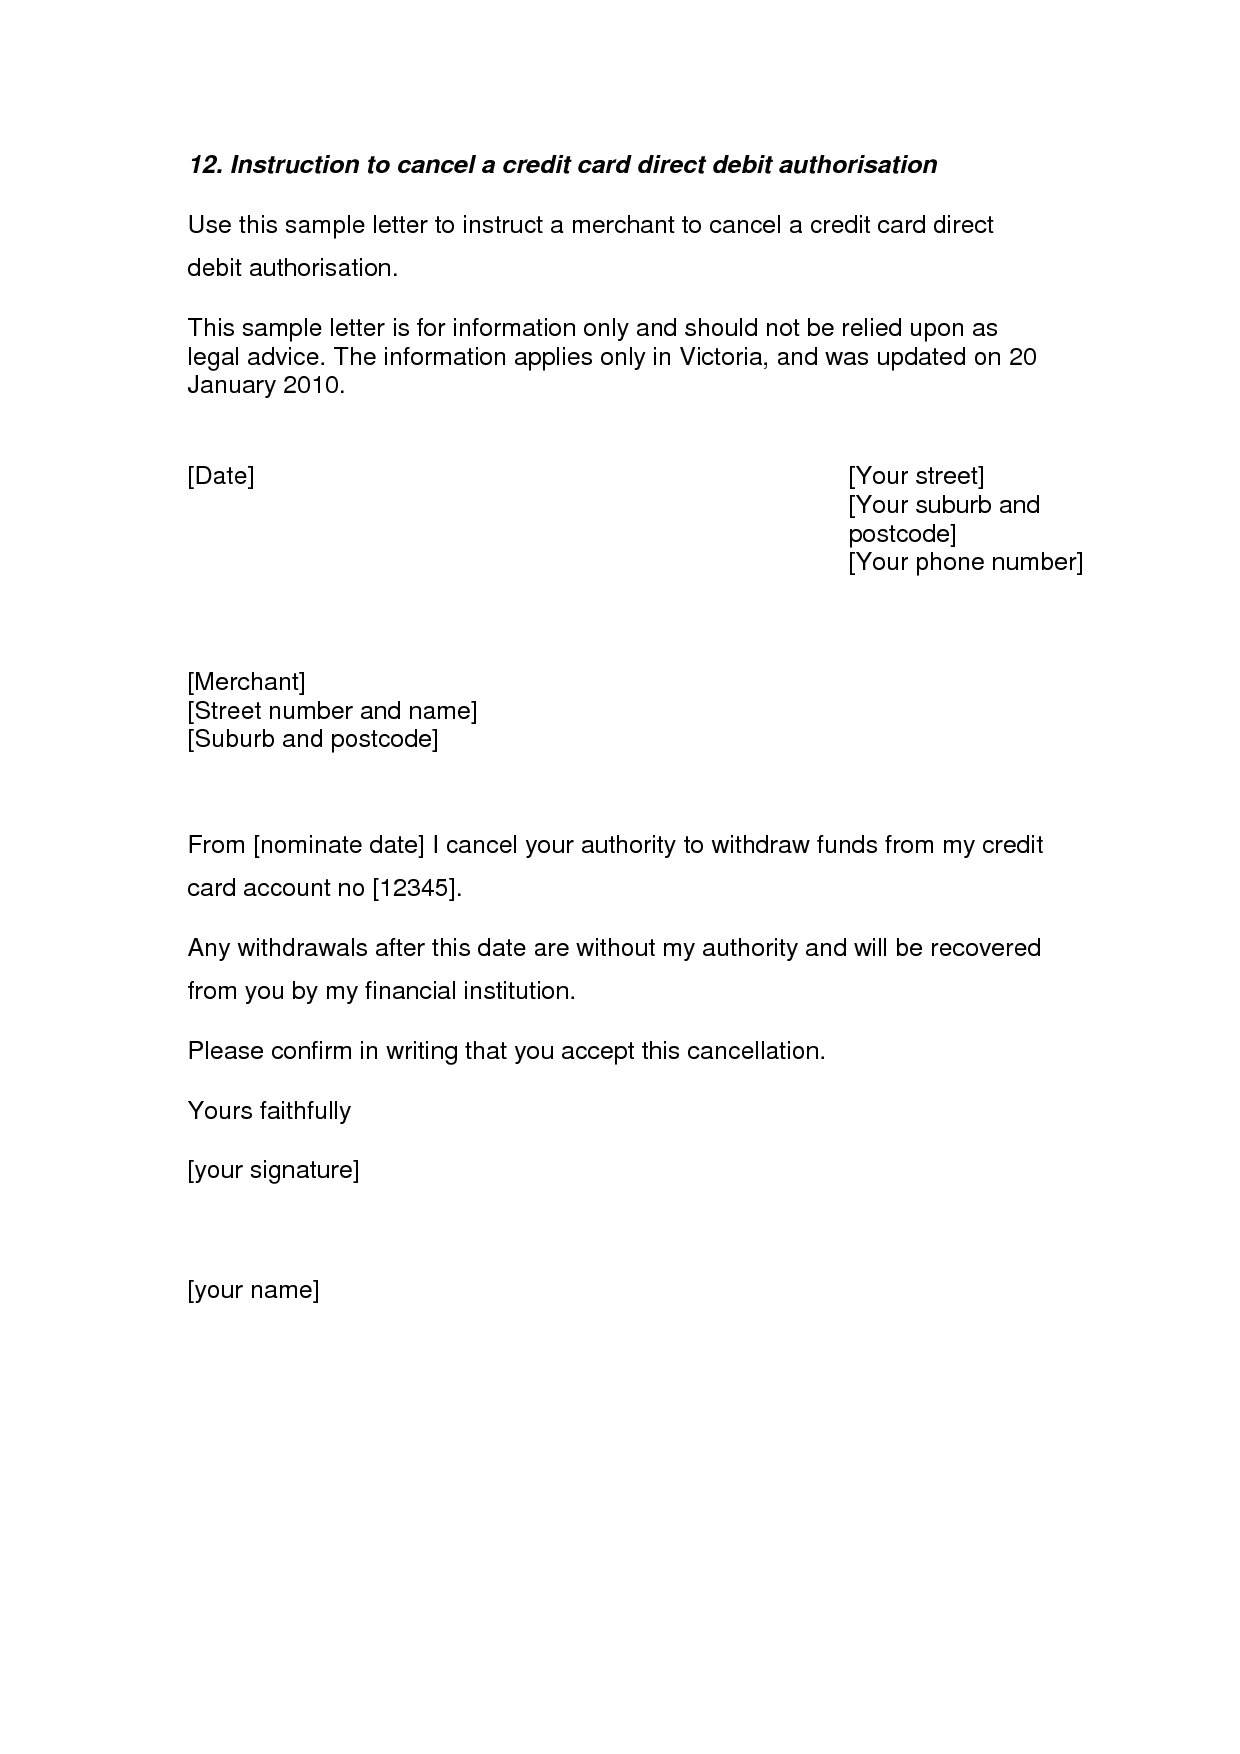 contract cancellation letter template free example-Credit Card Cancellation letter A Credit card cancellation letter is written by an individual who does not want to continue with the services of a credit 4-c